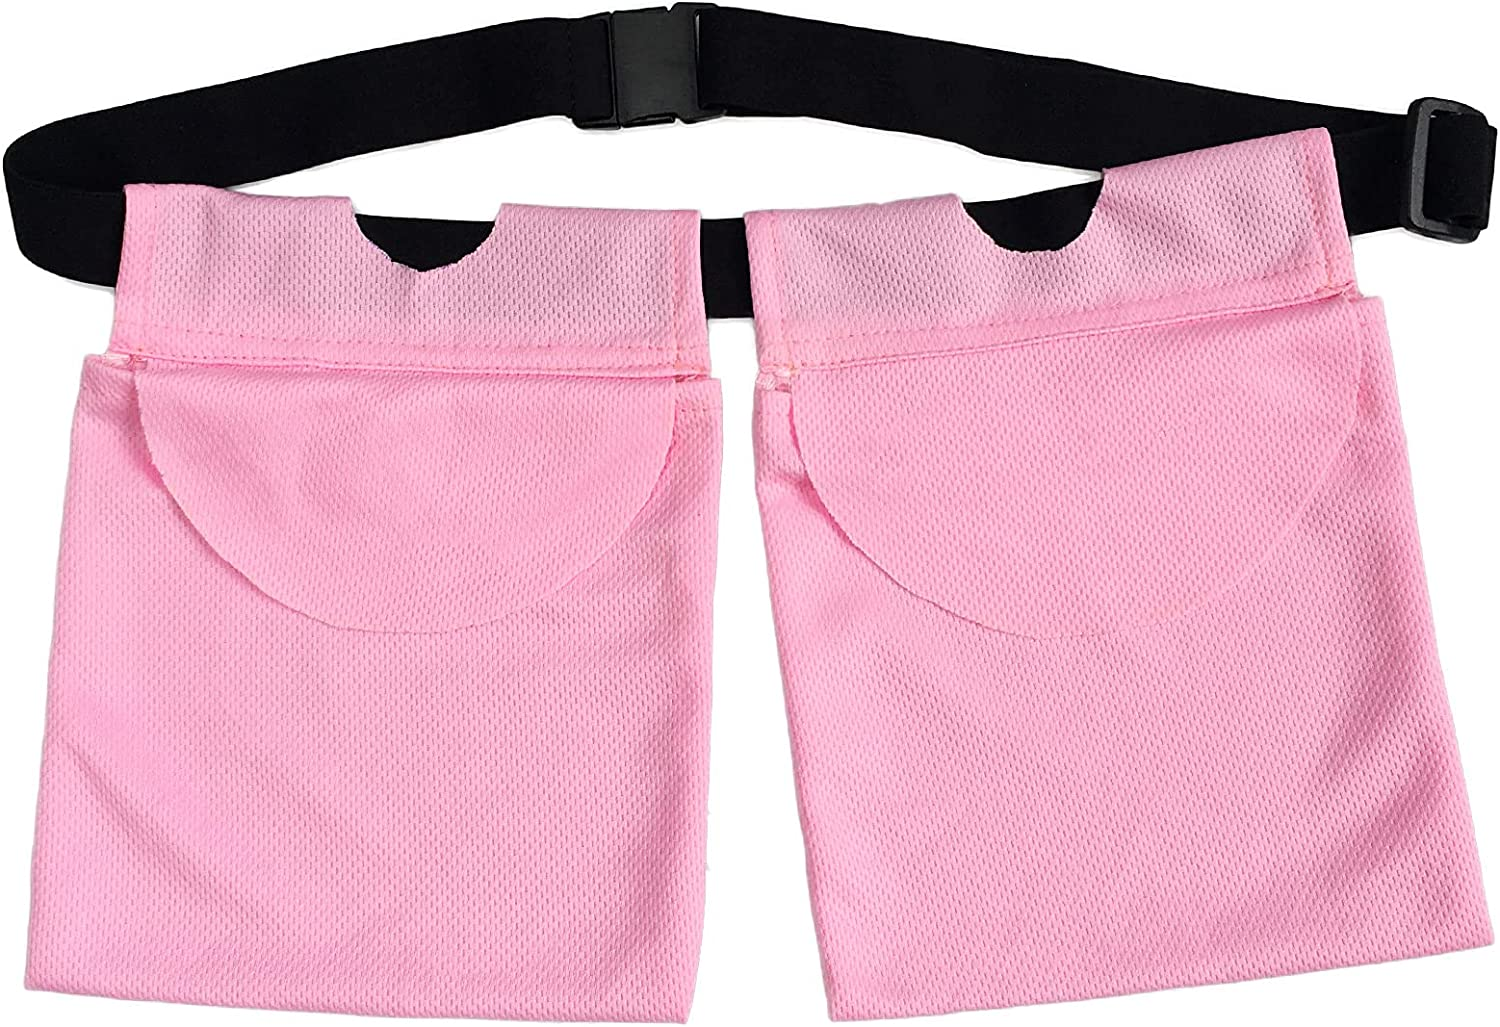 New products world's highest quality popular Drain Pouch Holder Adjustable Mastectomy with Excellent Pockets Drainage B